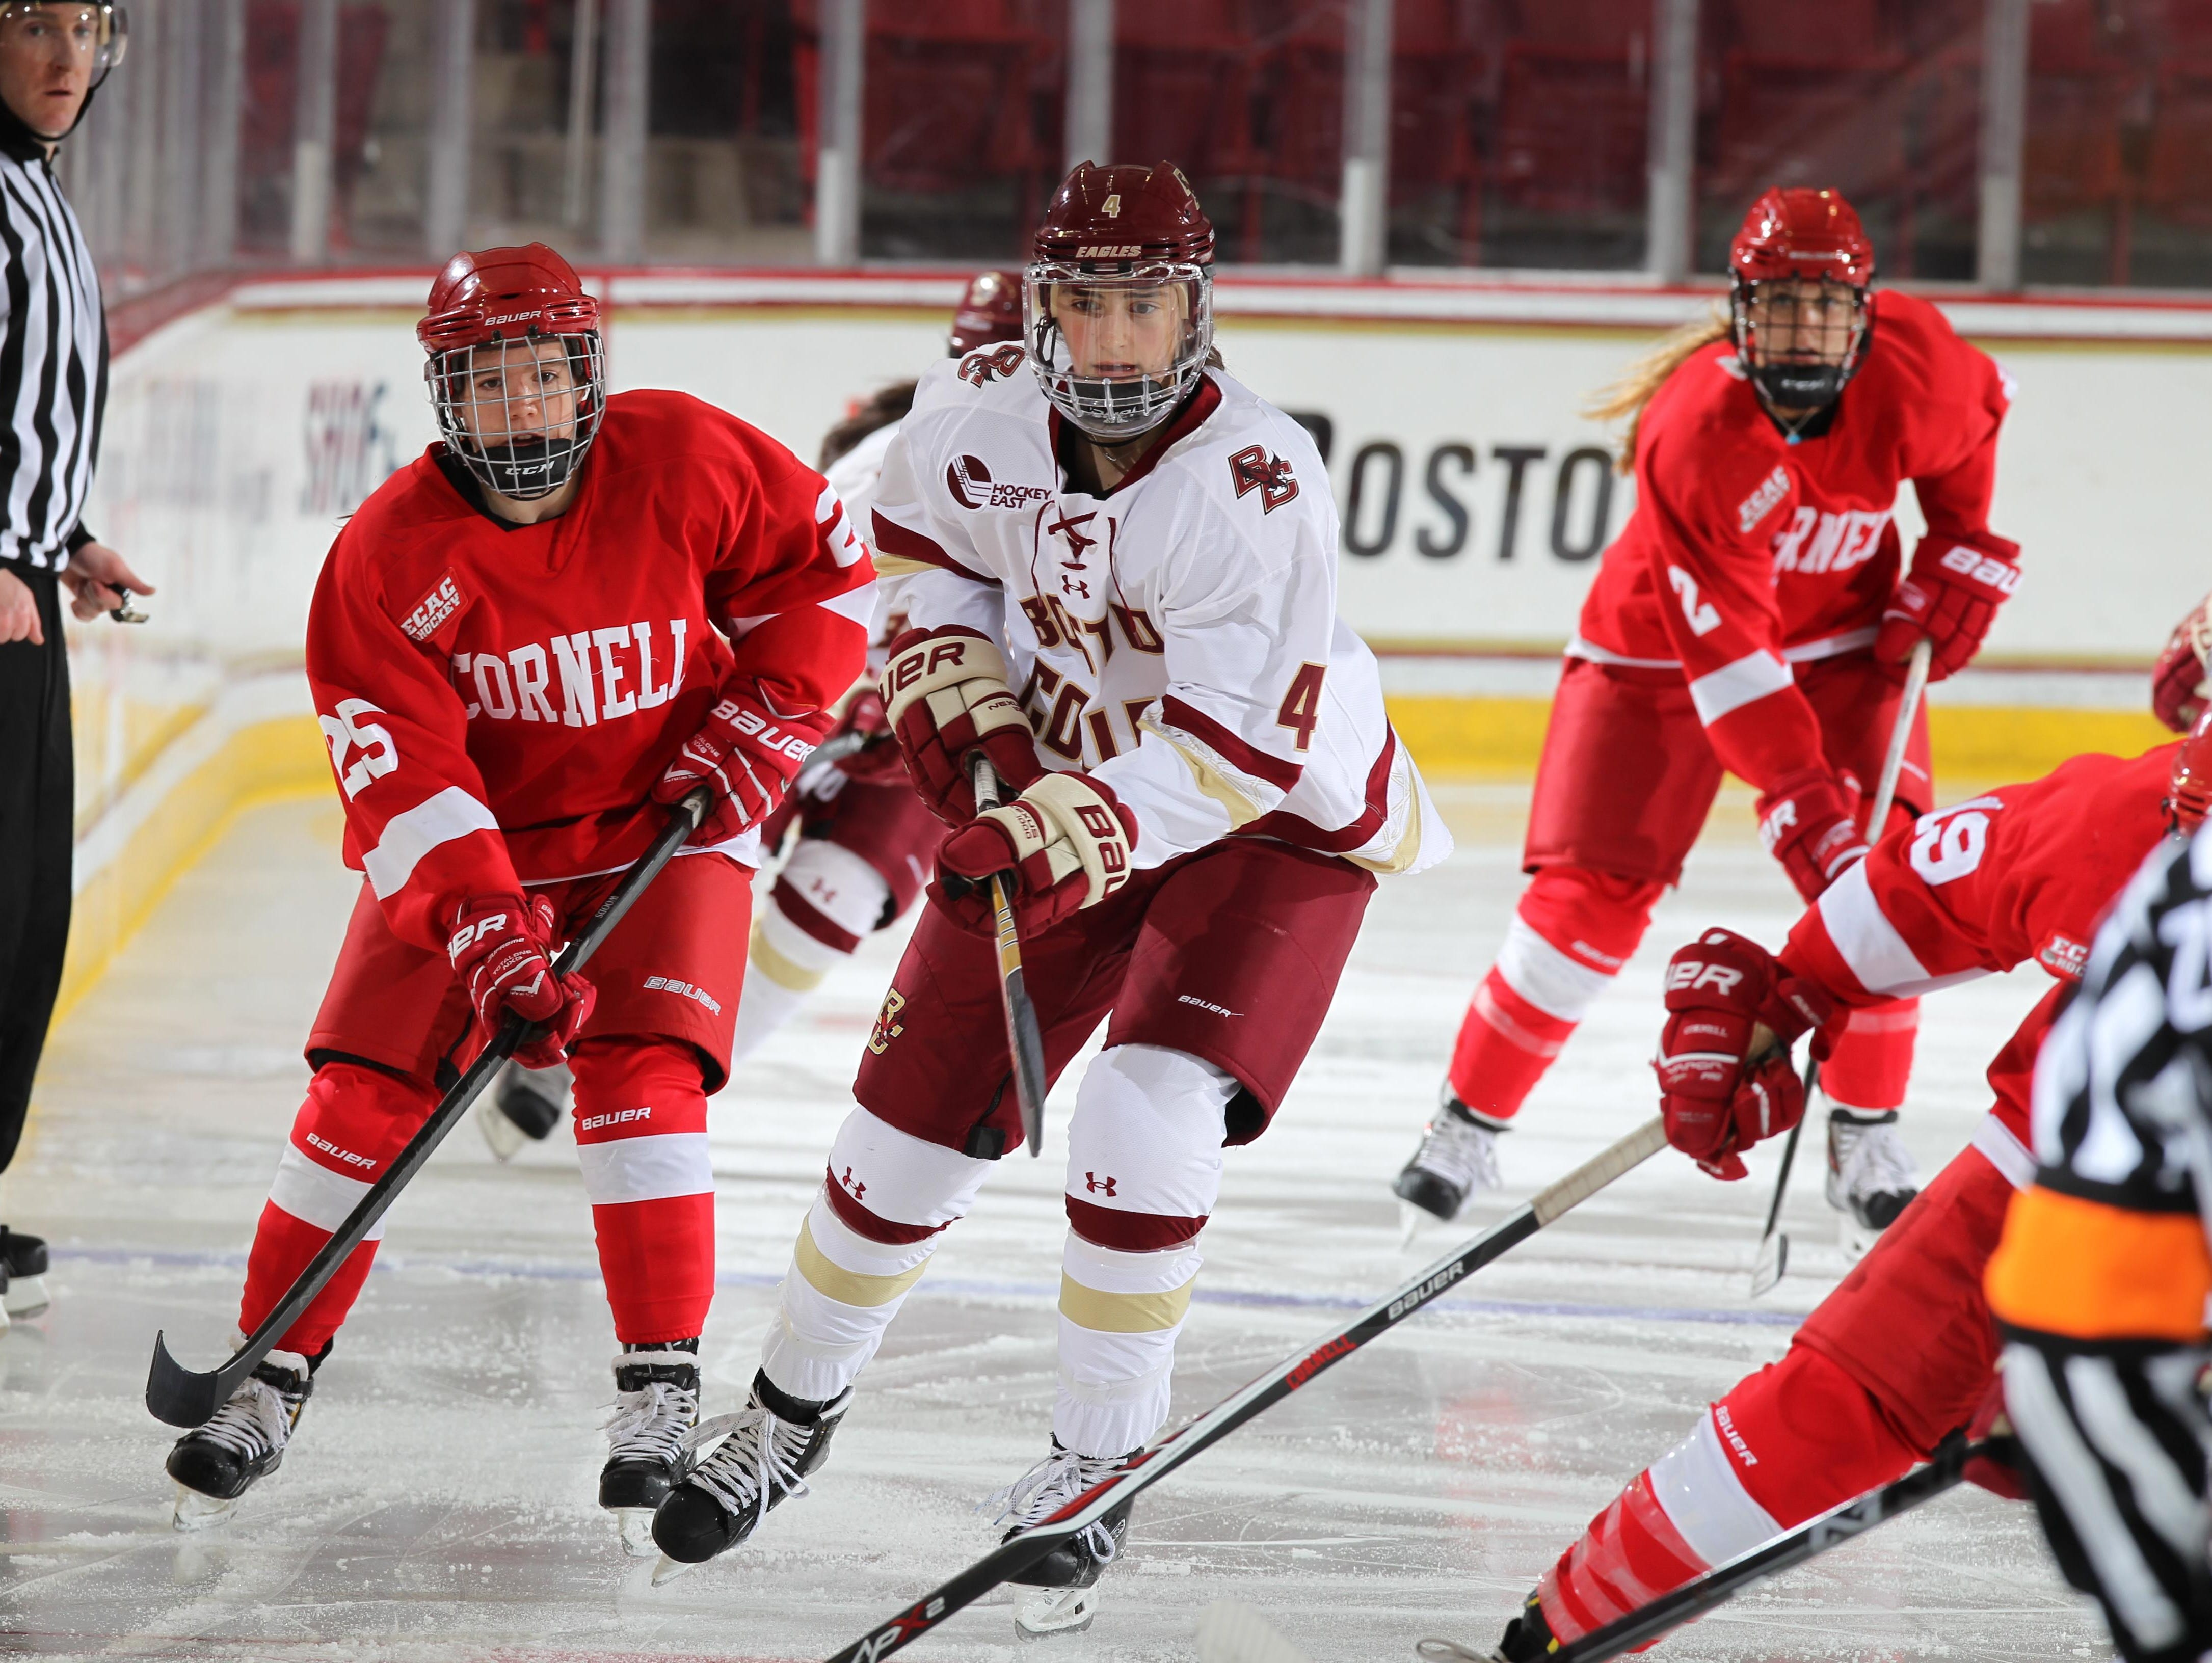 Boston College's Megan Keller of Farmington Hills (middle) is one of the top young defensive players in U.S. women's hockey.